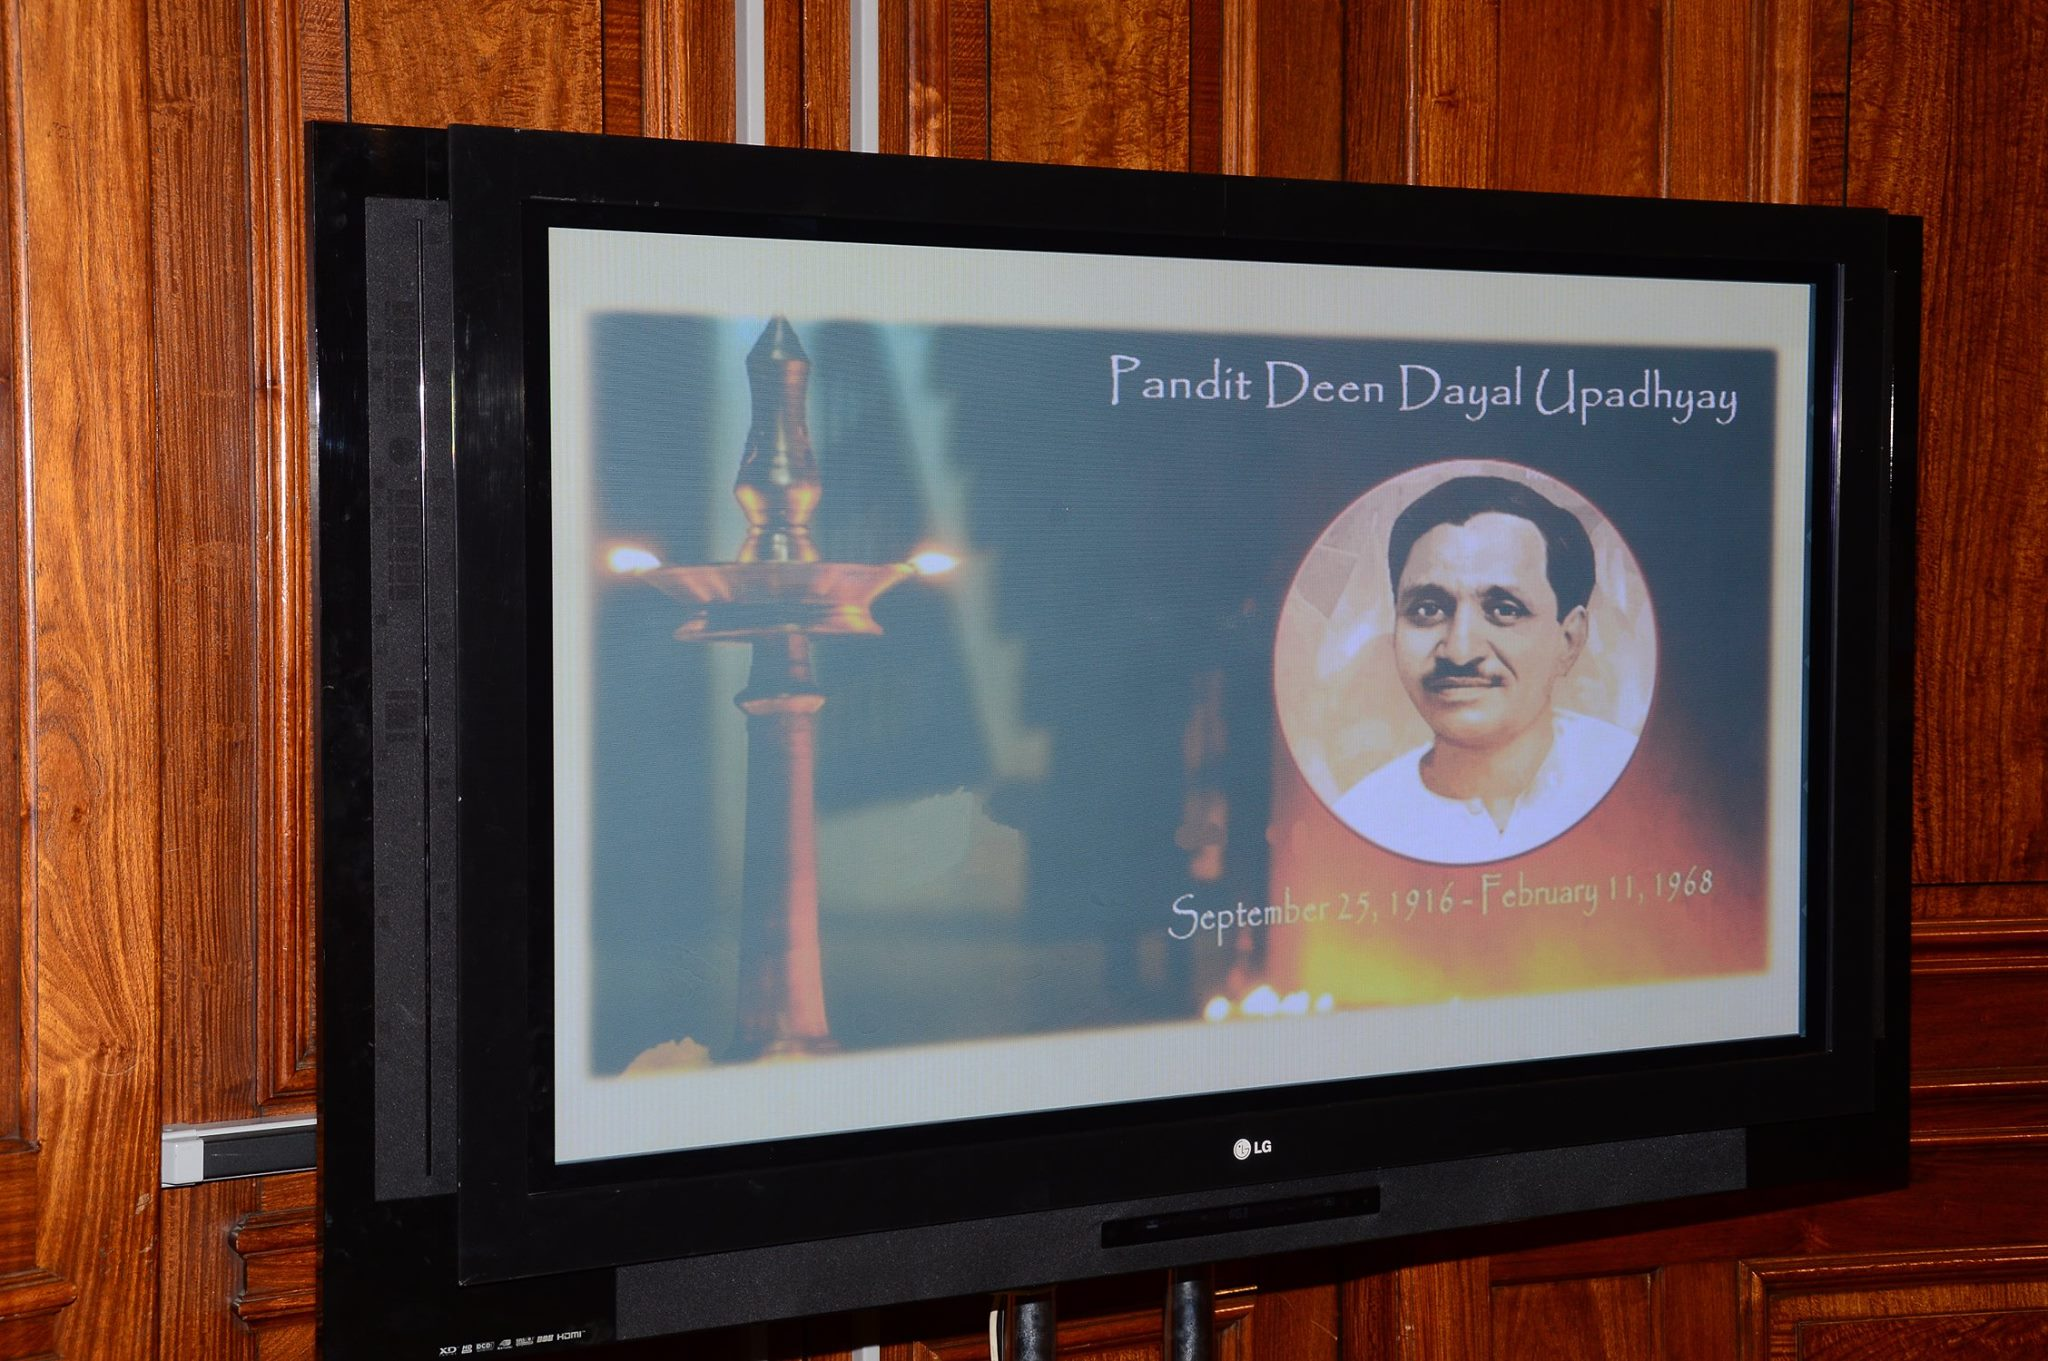 A ceremony at India's High Commission to the UK celebrated the 100th birth anniversary of Pandit Deen Dayal Upadhyaya.